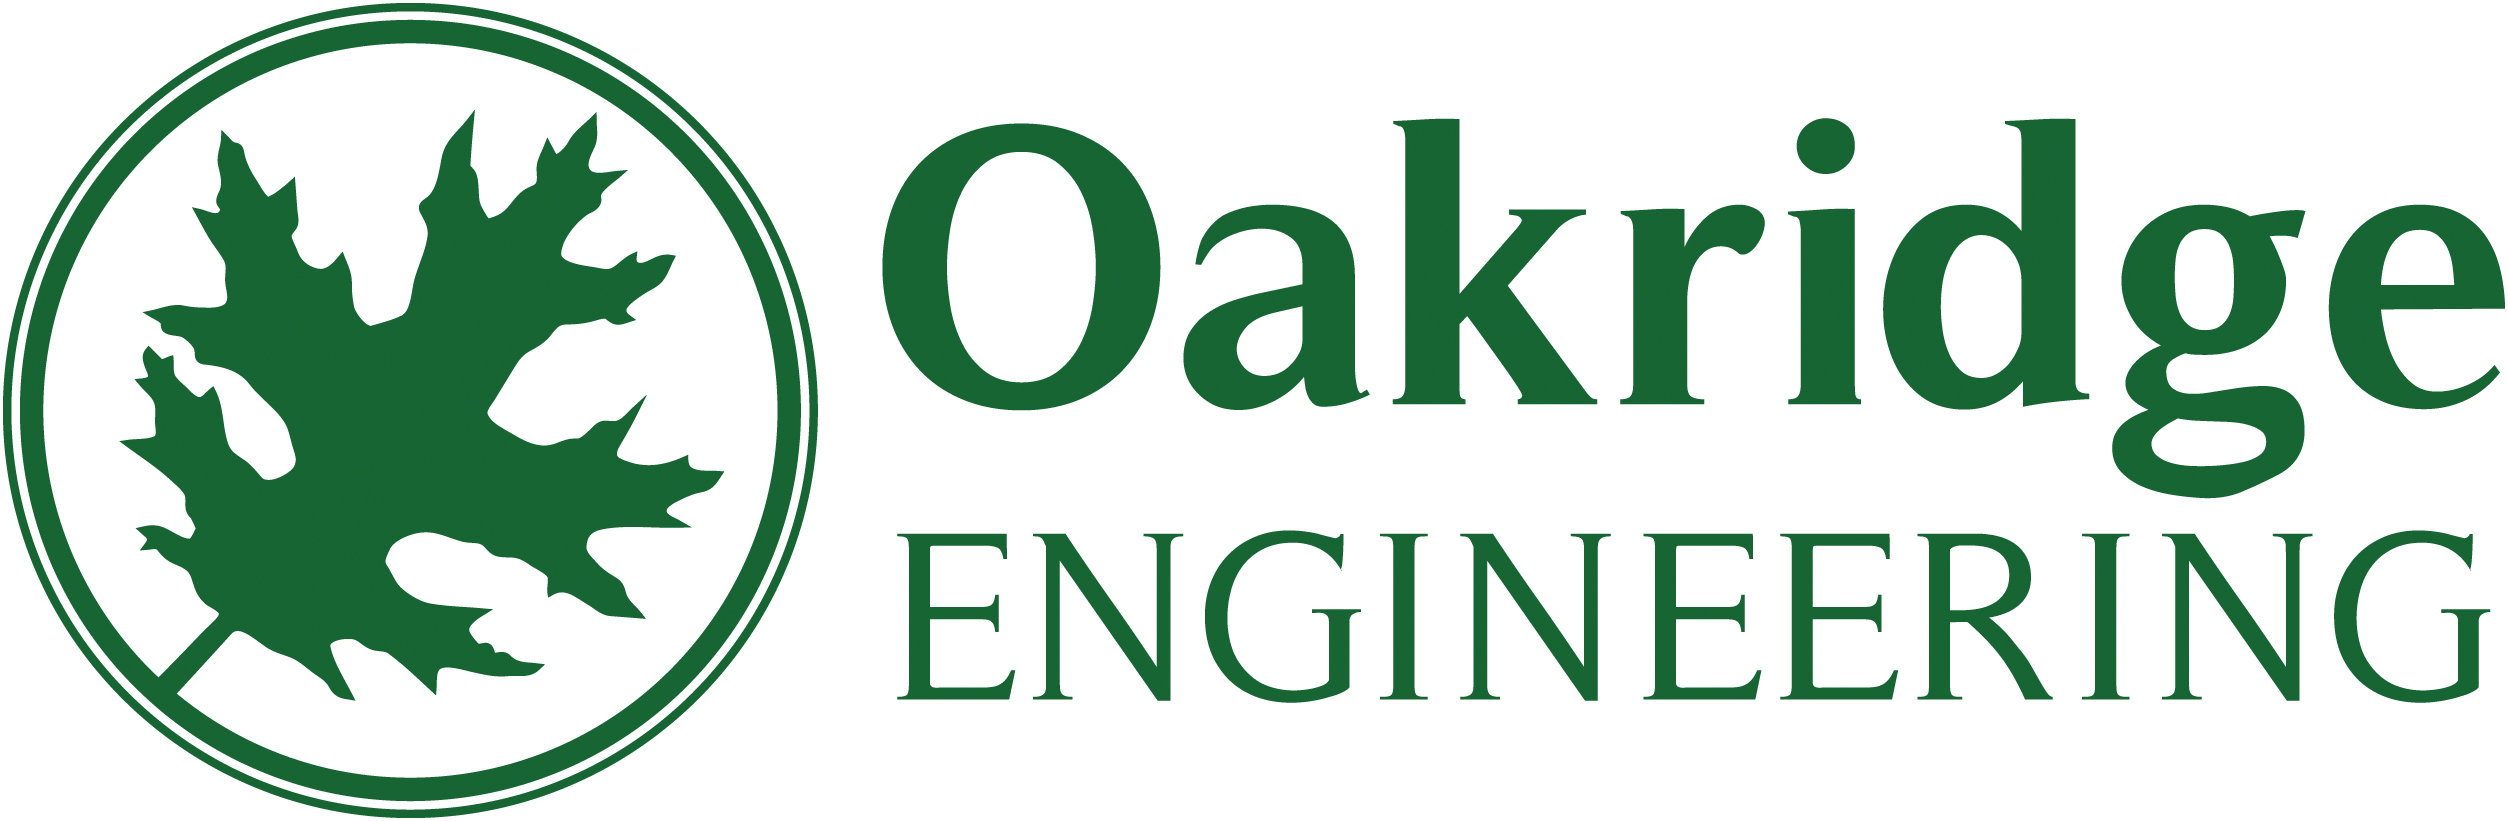 Oakridge Engineering